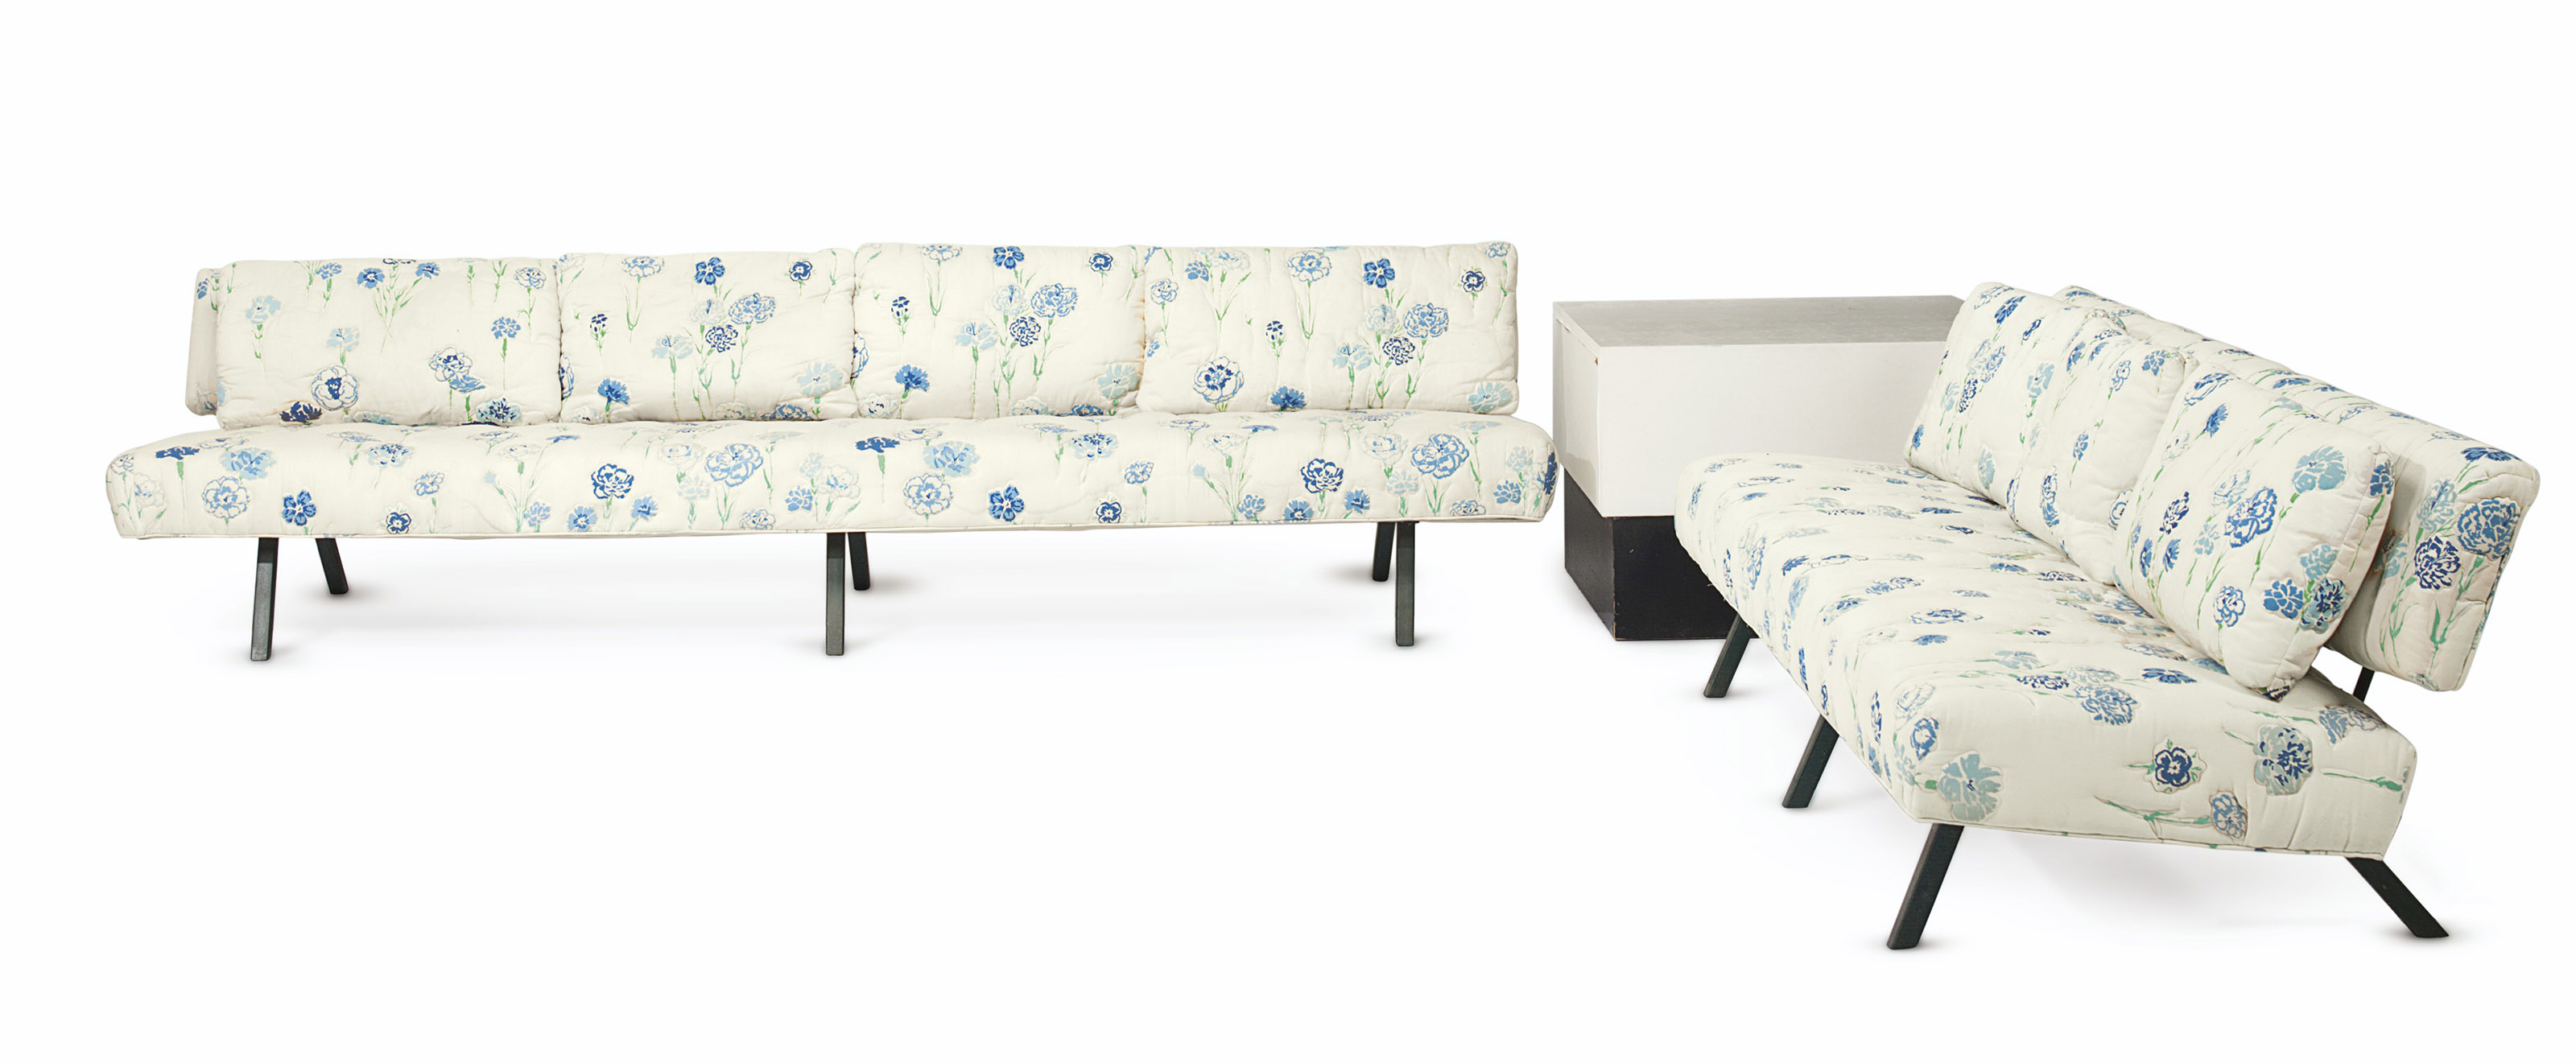 A SUITE OF GREEN-PAINTED METAL AND OUTLINE-QUILTED FLORAL SEAT FURNITURE